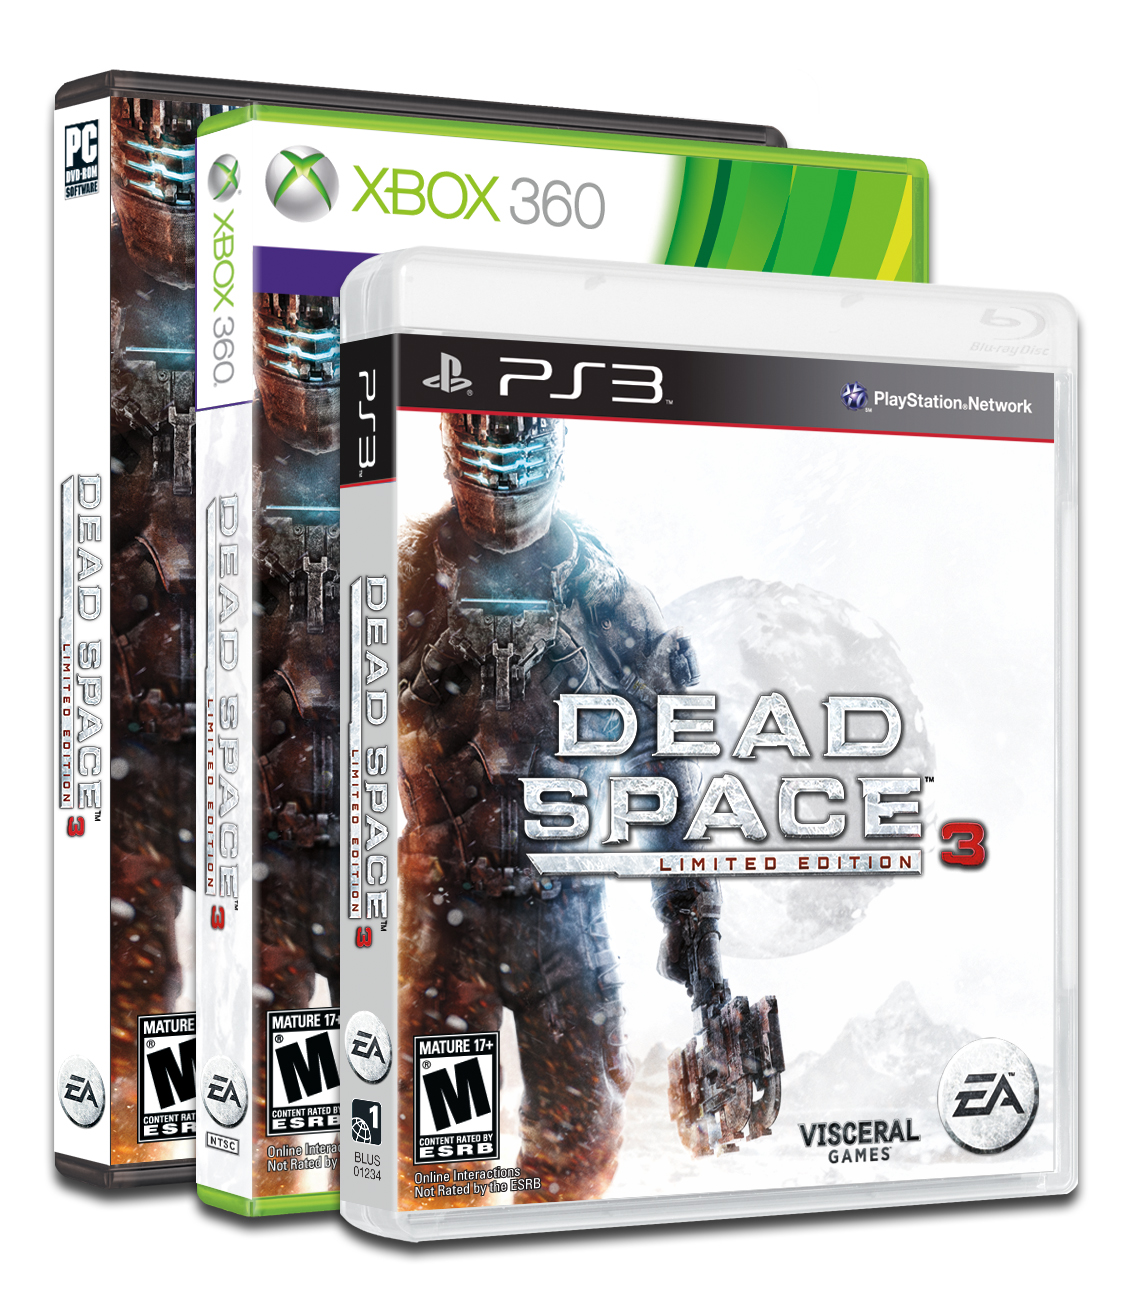 Dead Space 3 boxart Win Dead Space 3 From ShockYa!